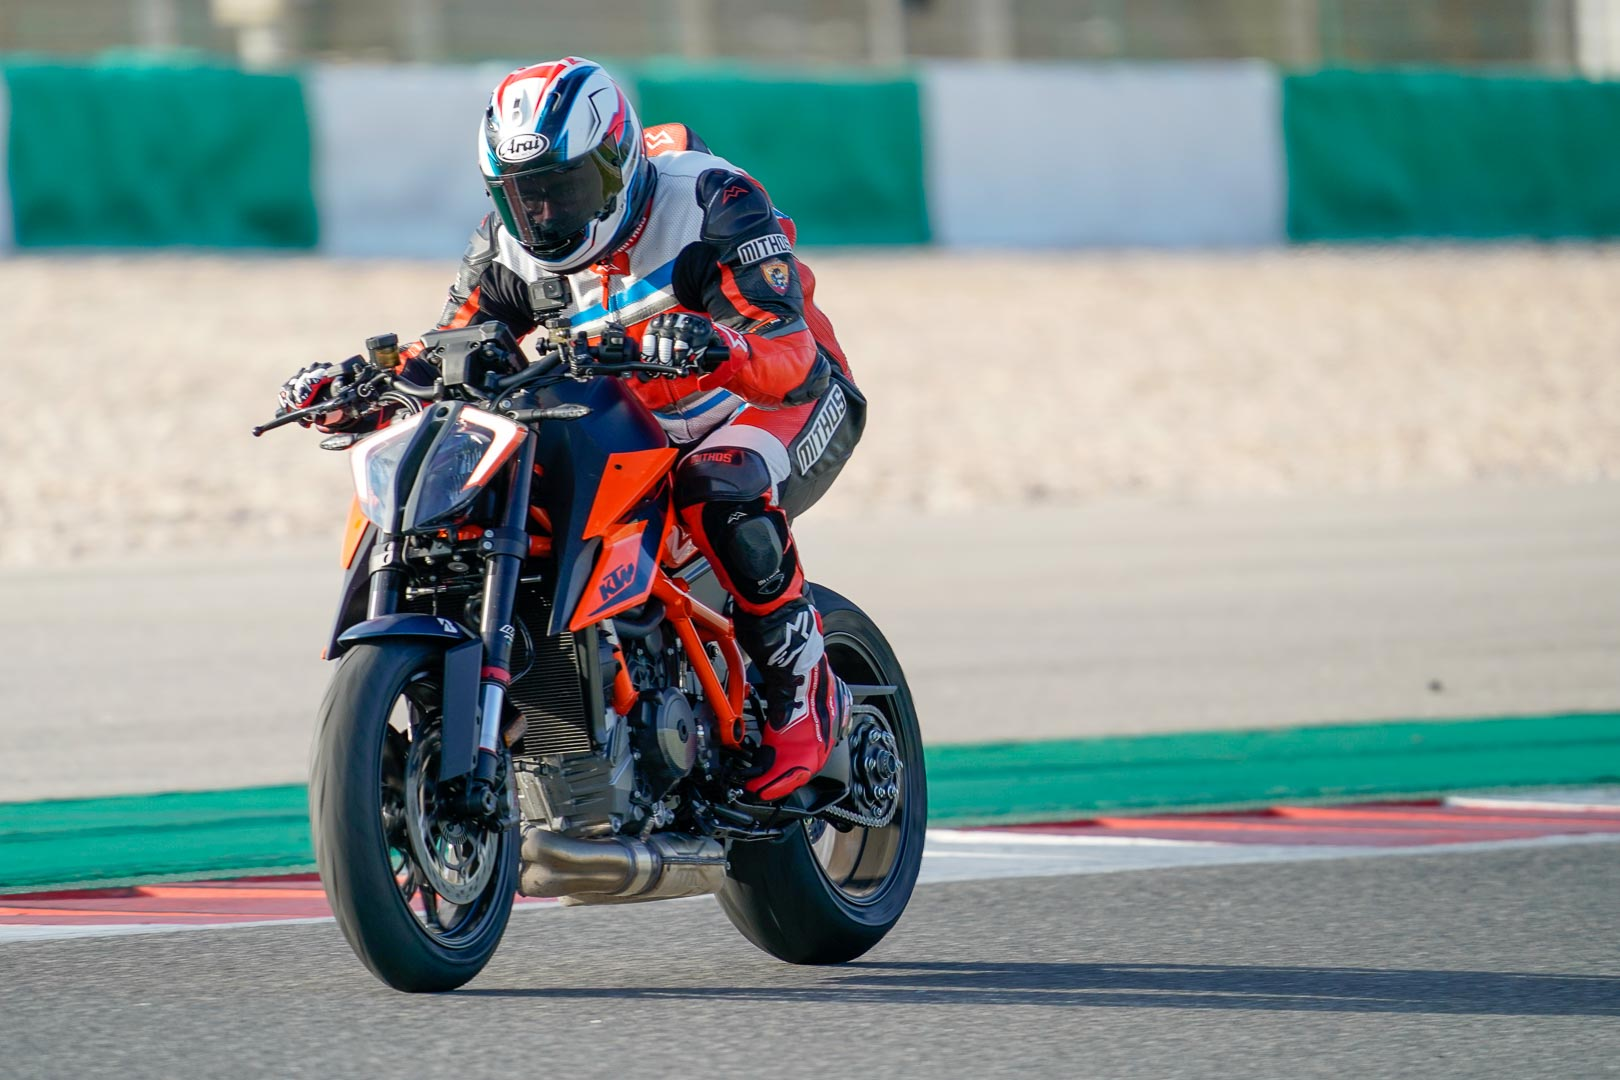 2020 Super Duke R top speed